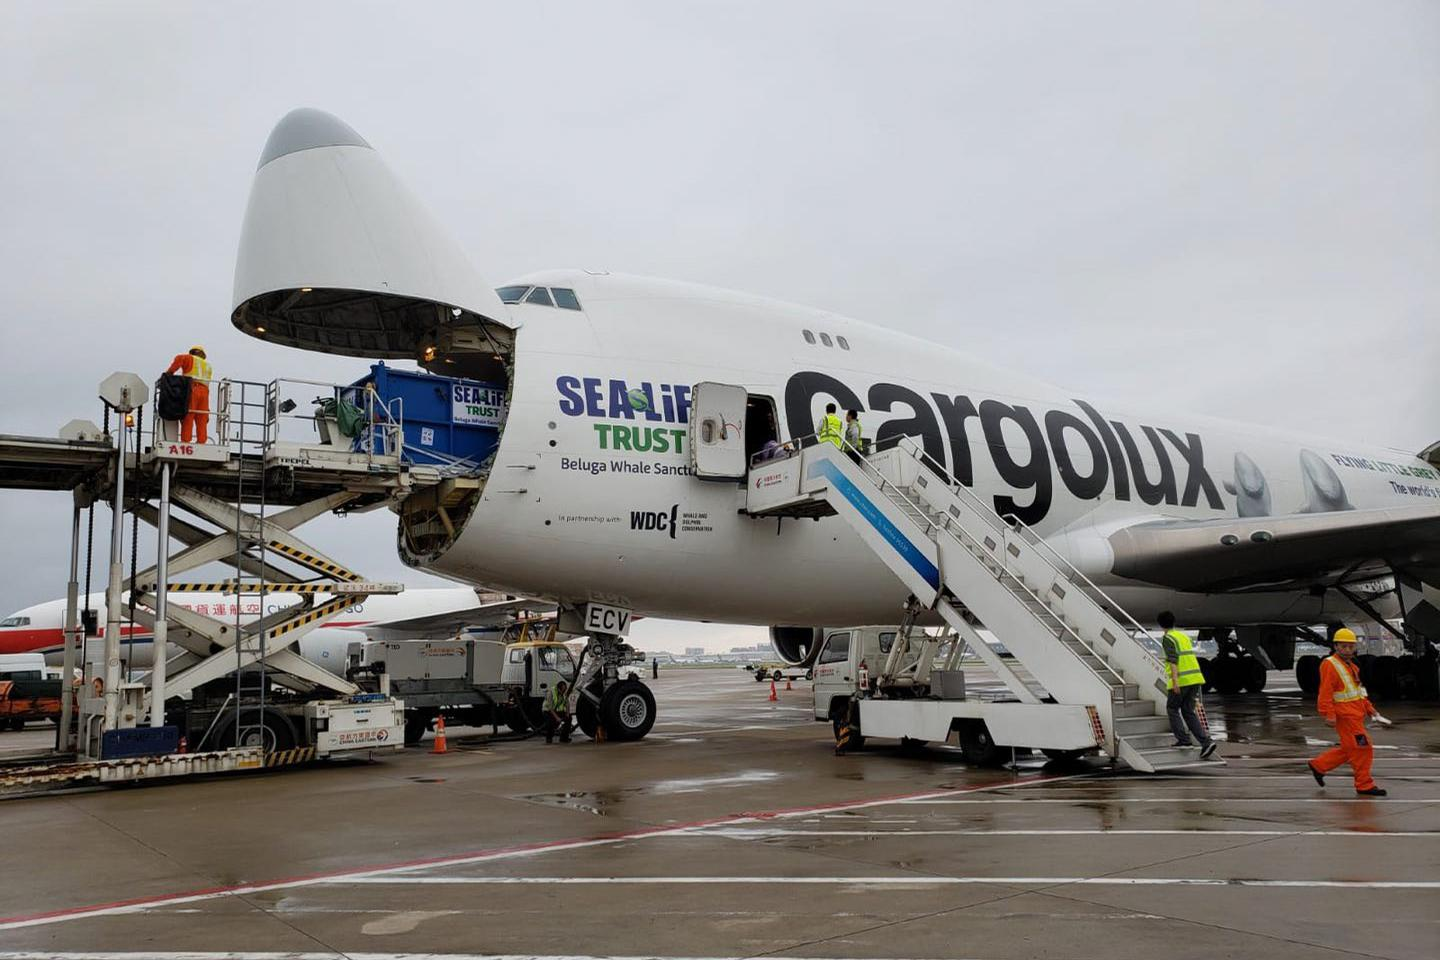 A specially commissioned Cargolux aircraft delivered the belugas to Iceland